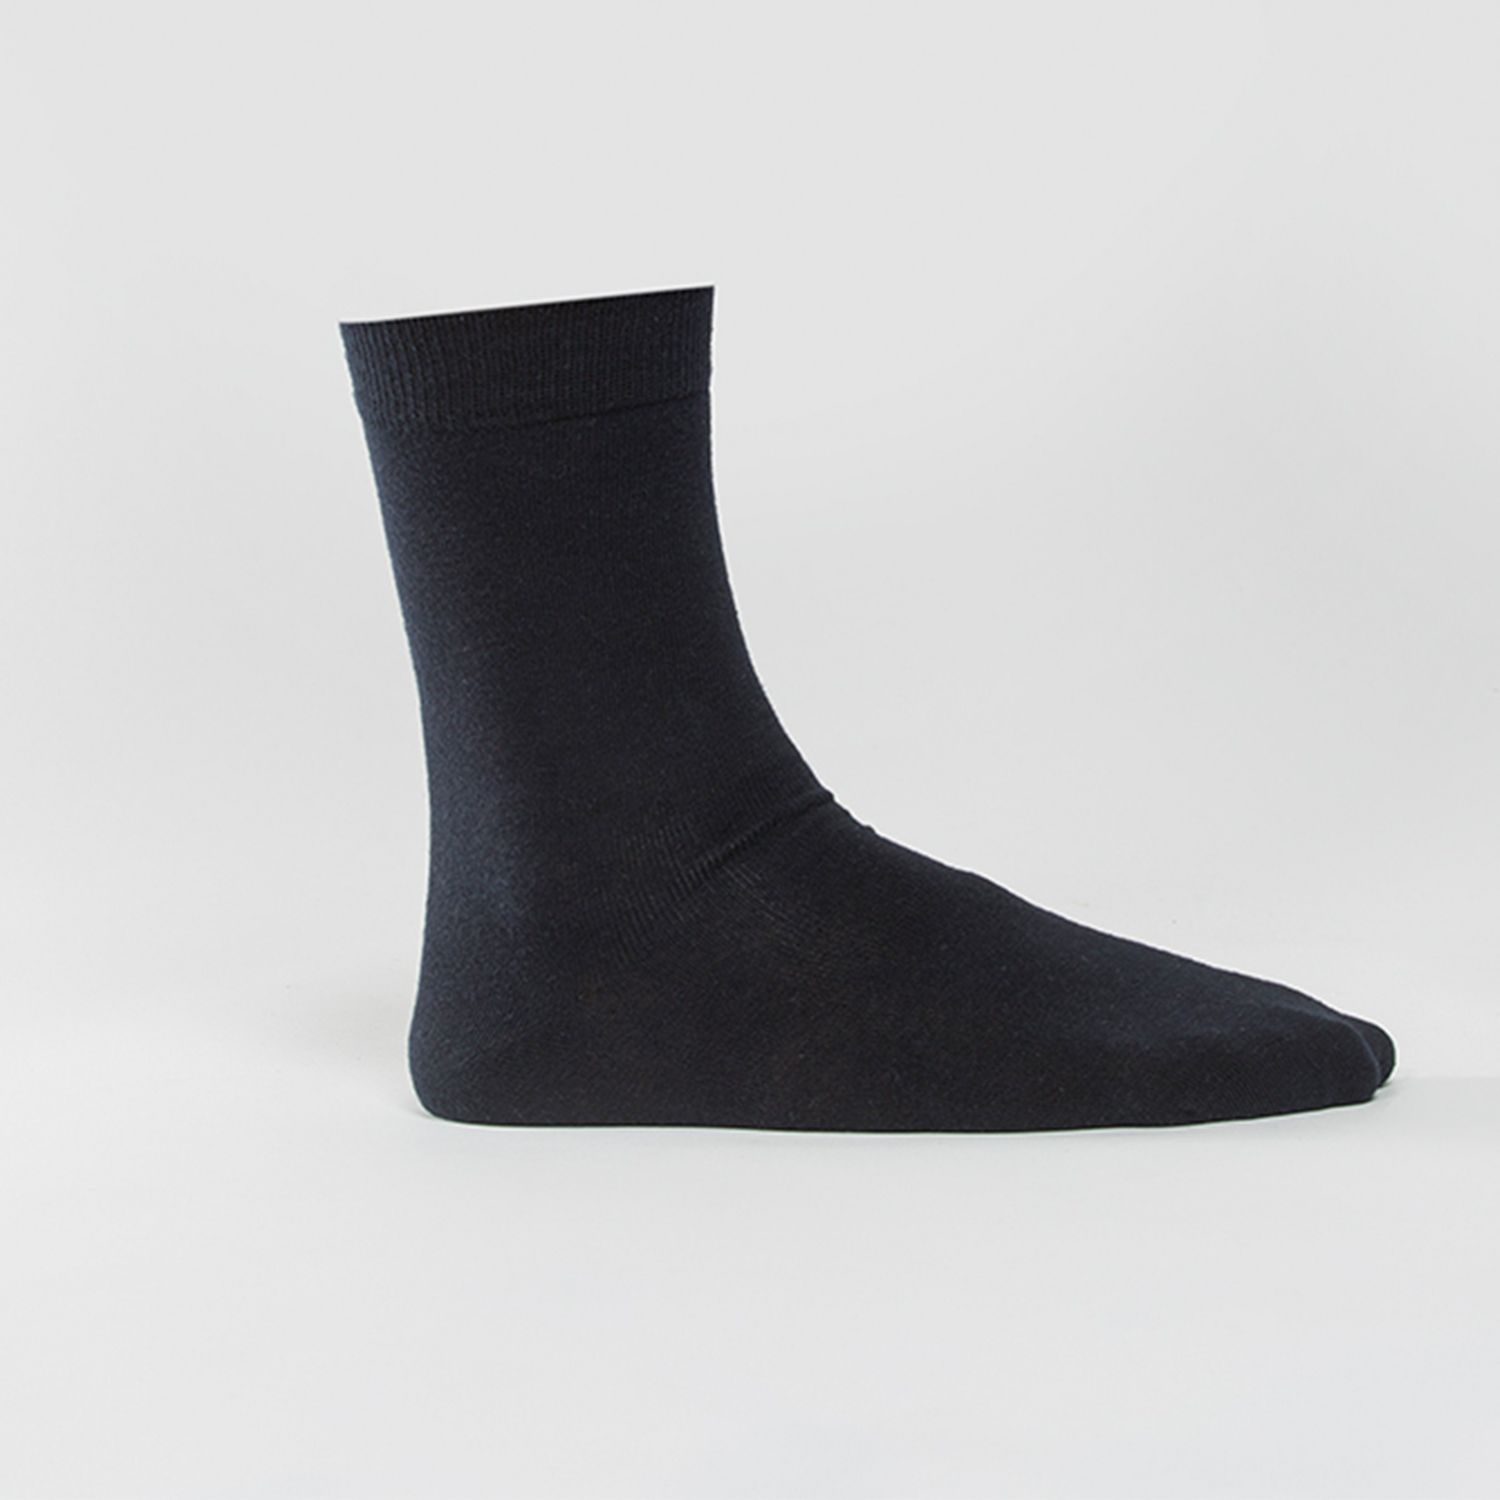 Kayser SOQUETES BAMBOO AZUL Calcetines